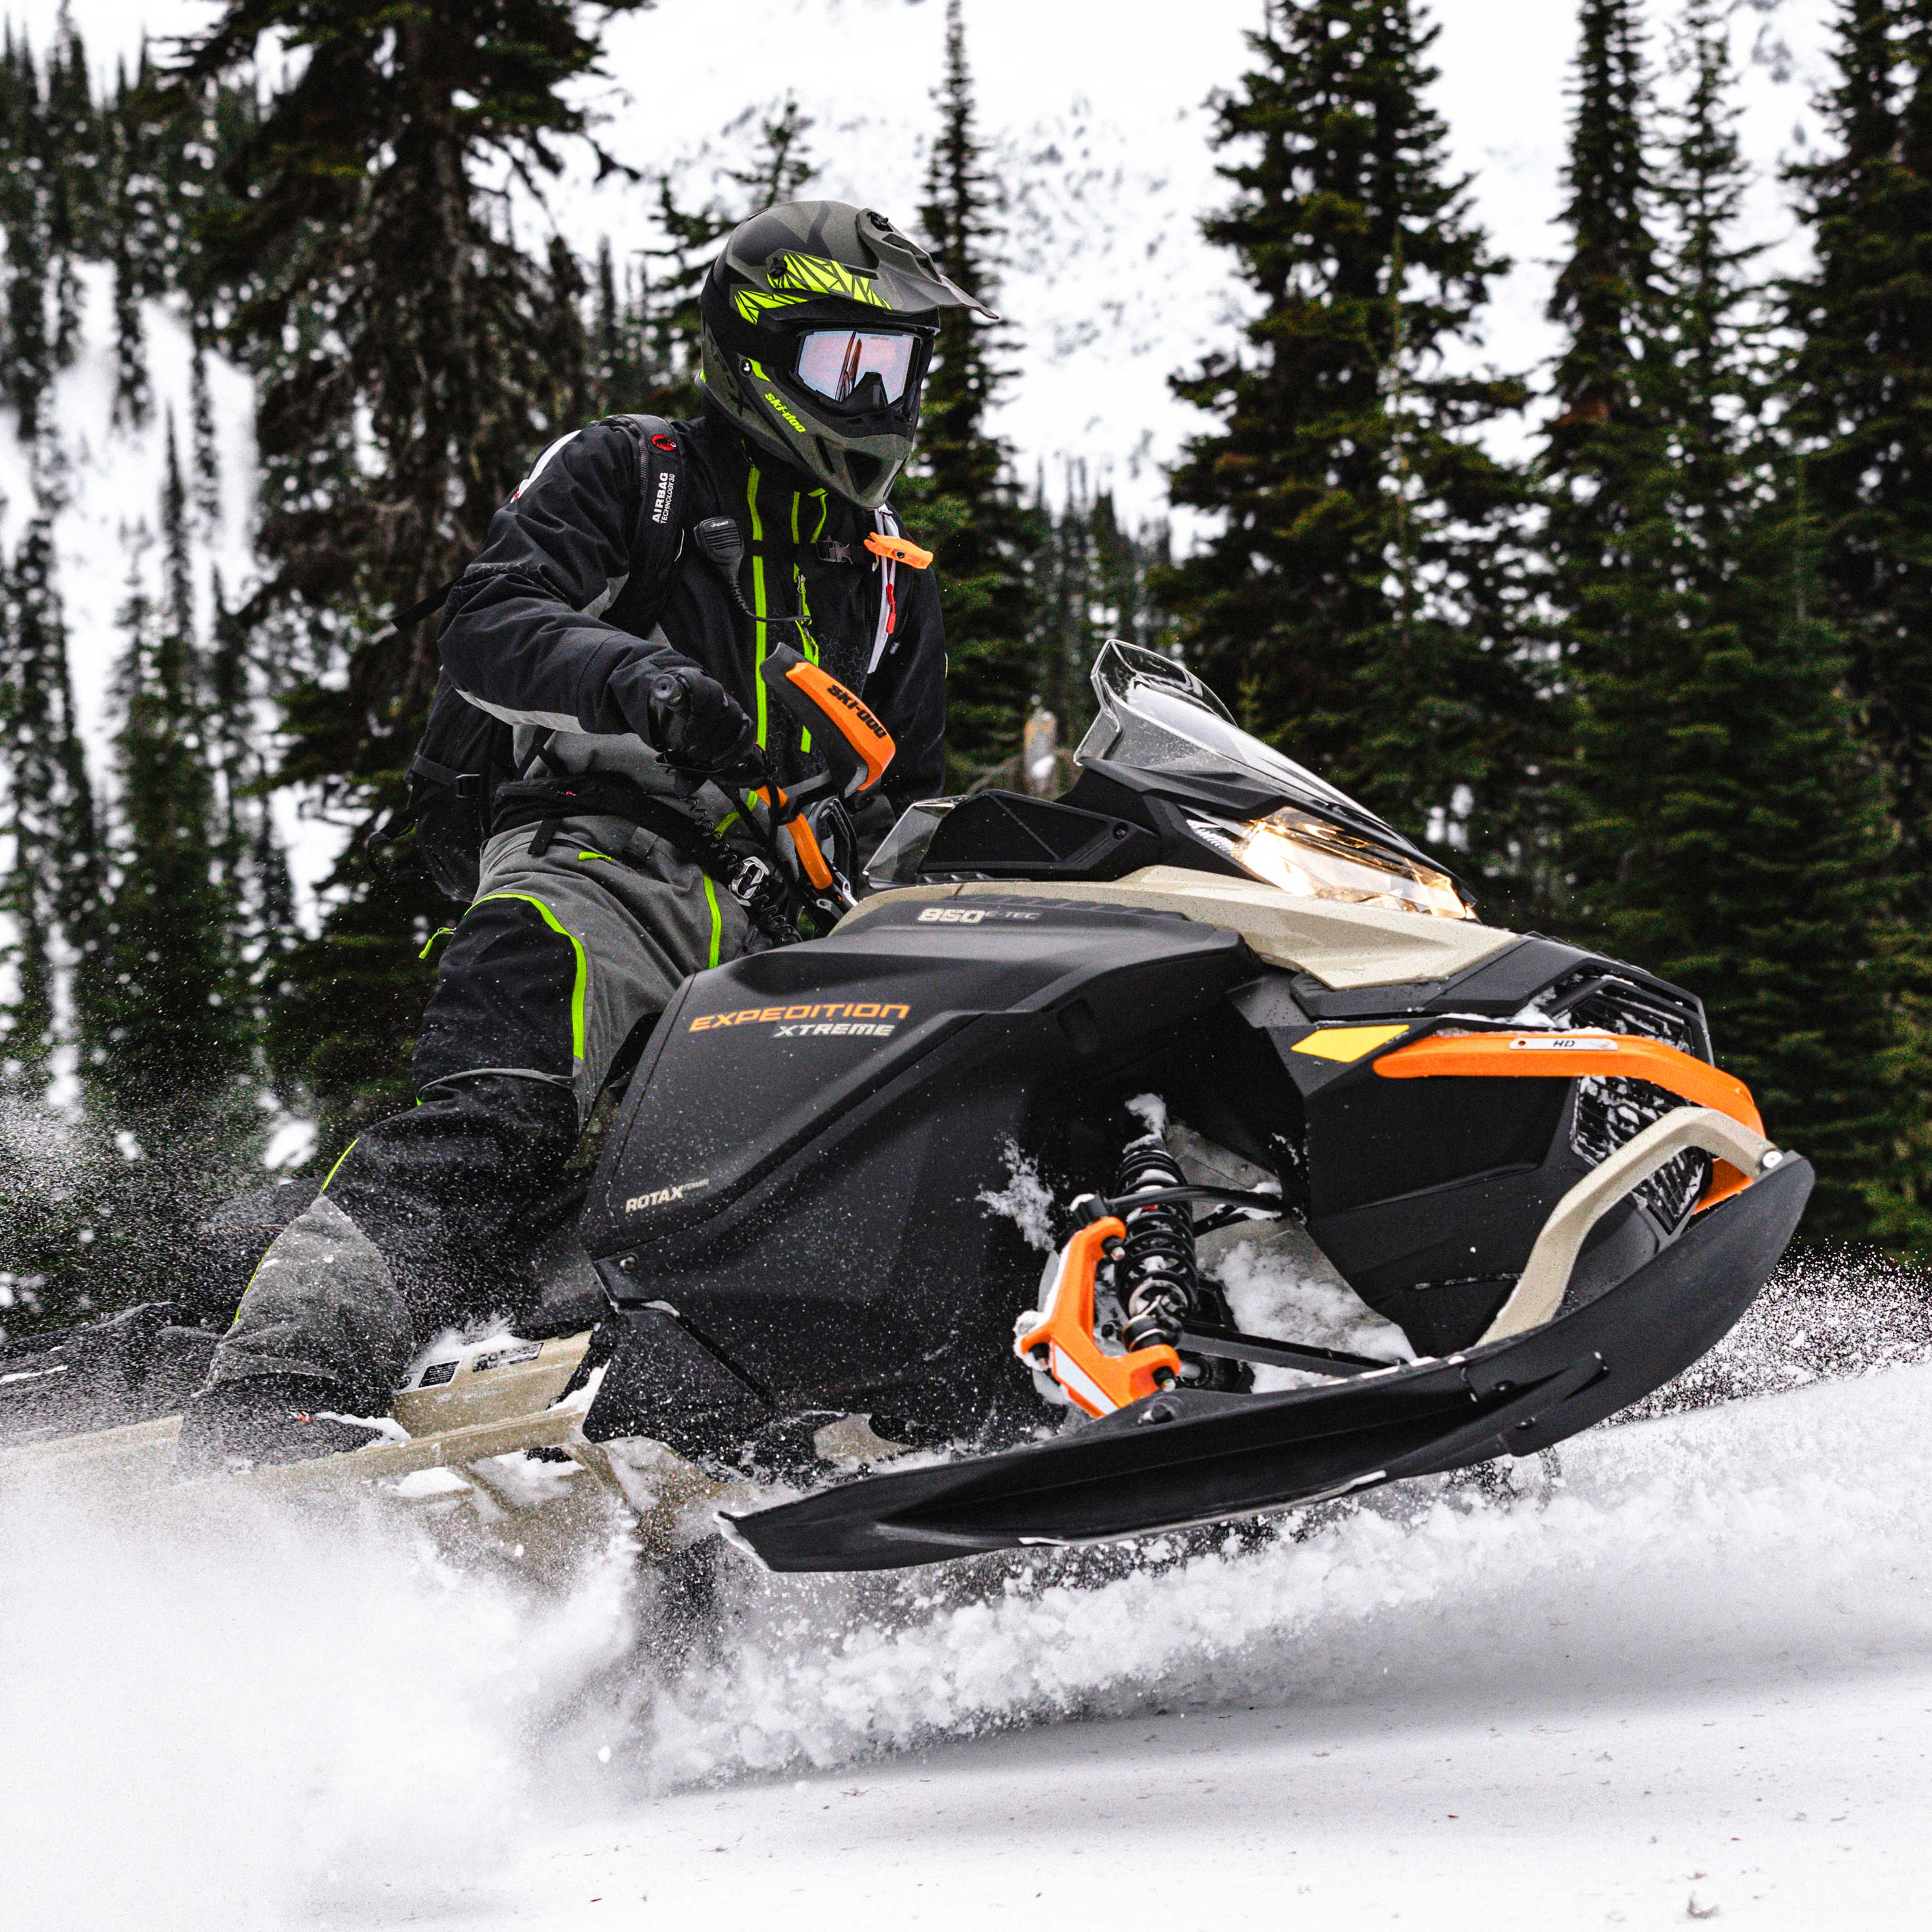 Rider driving his Ski-Doo Expedition, utility snowmobile